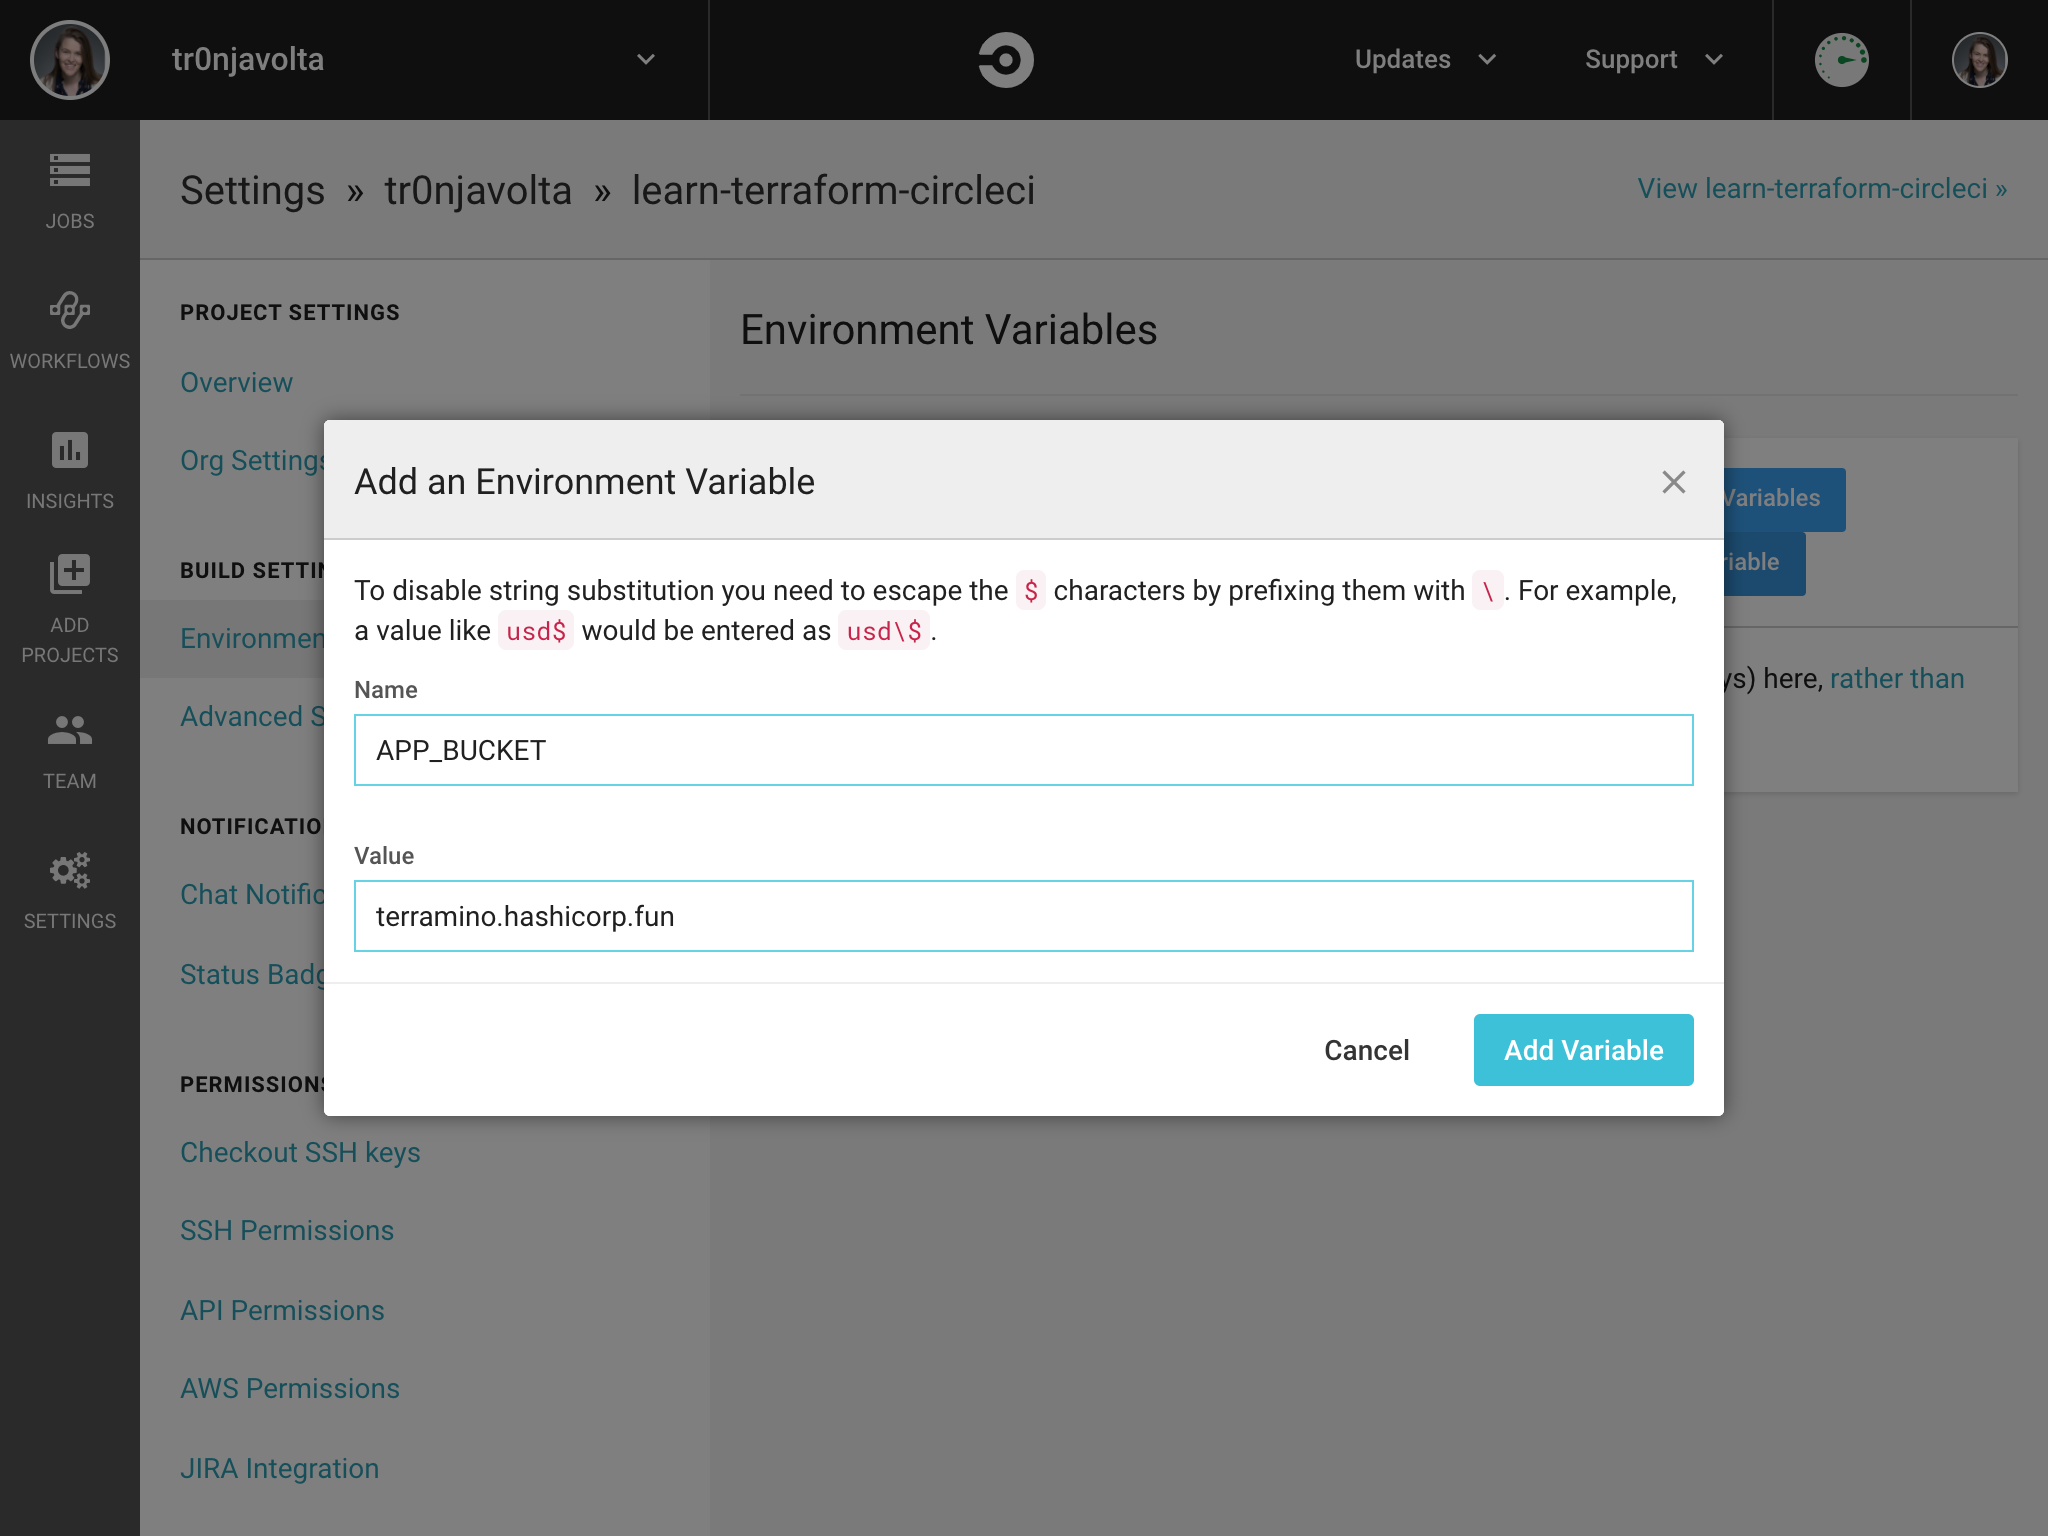 UI view of Add Environment Variable